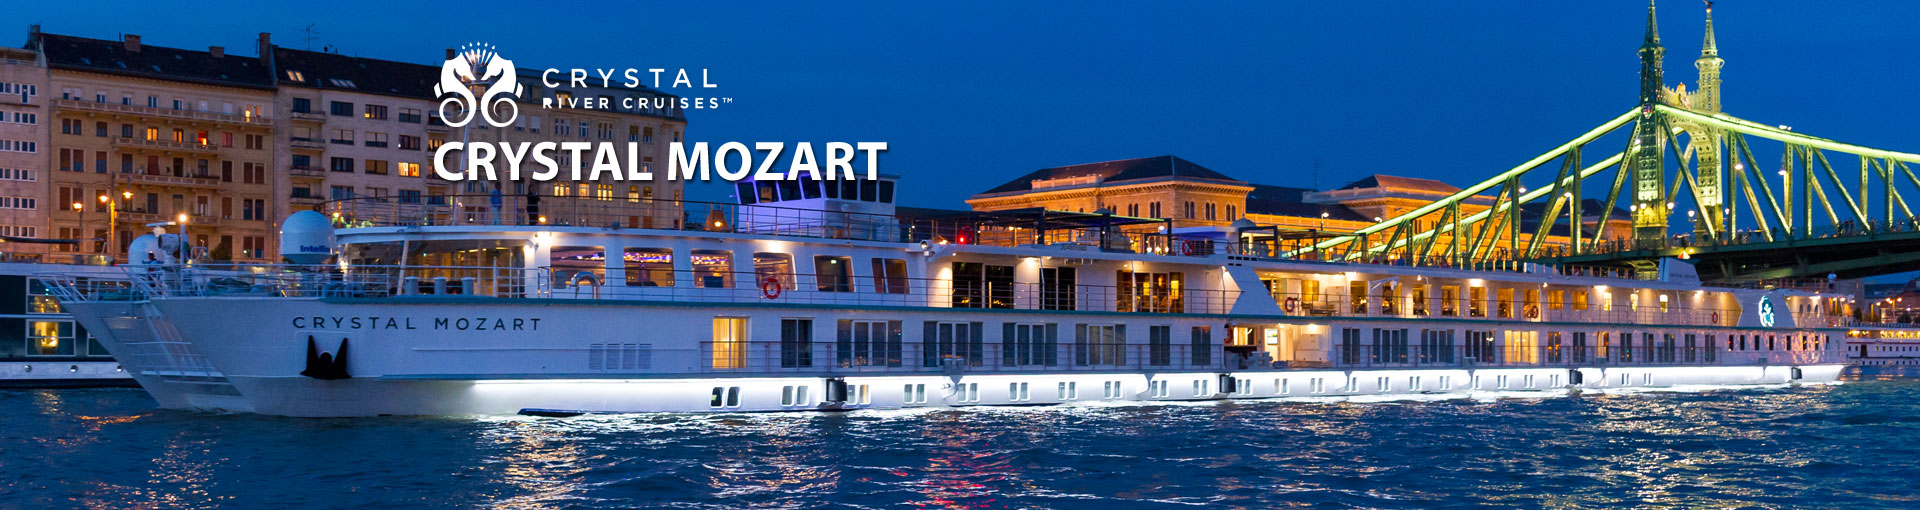 Crystal Mozart River Cruise Ship